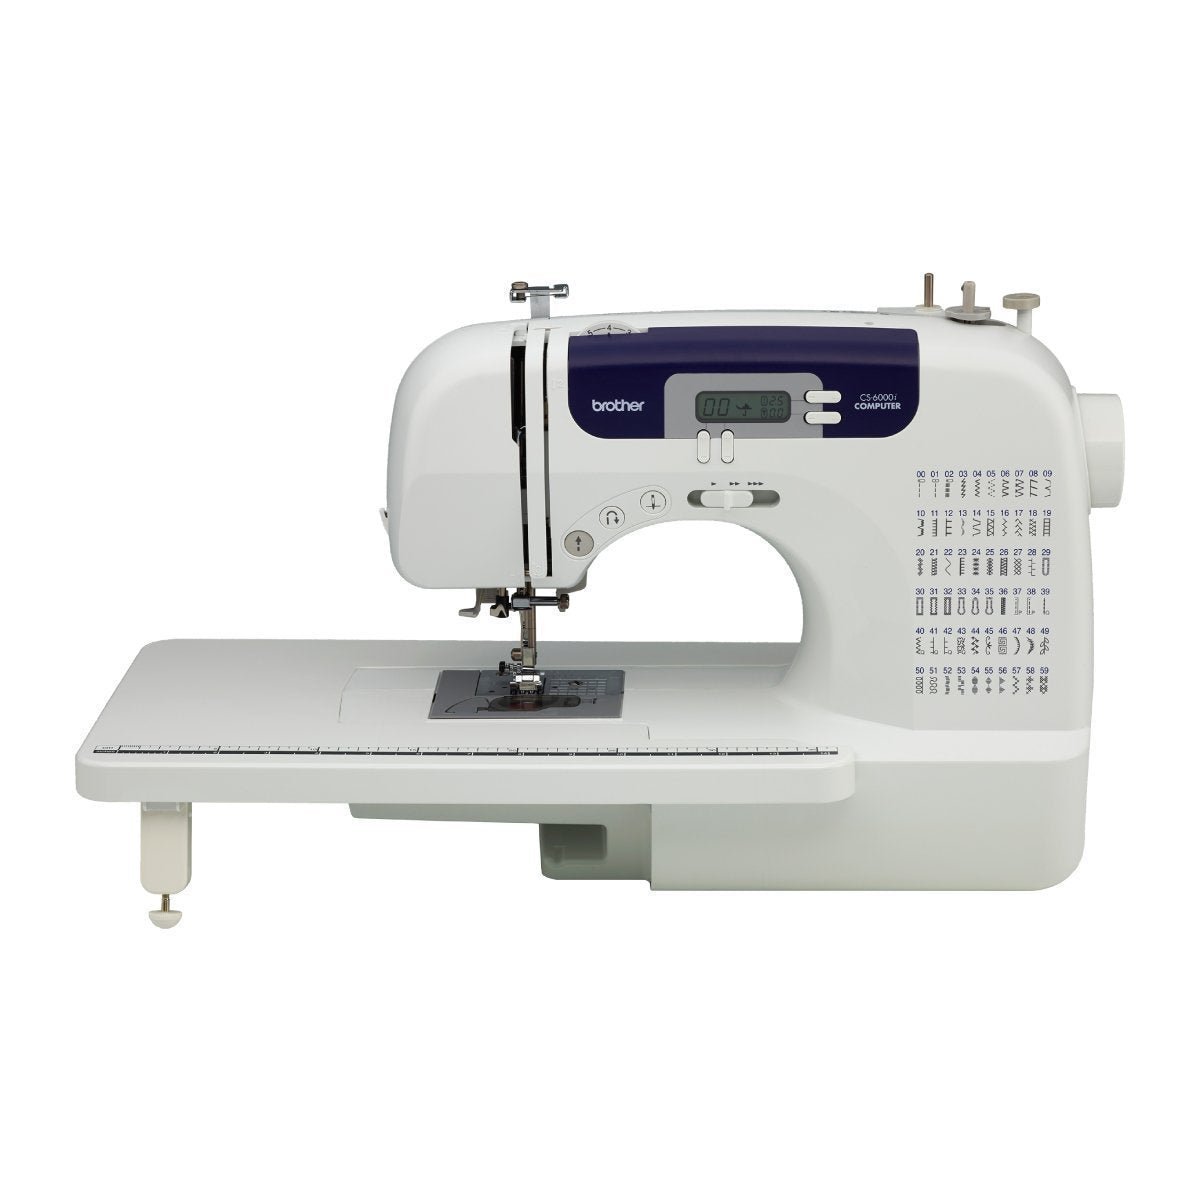 Máquina-de-coser-Computarizada-Brother-CS6000i